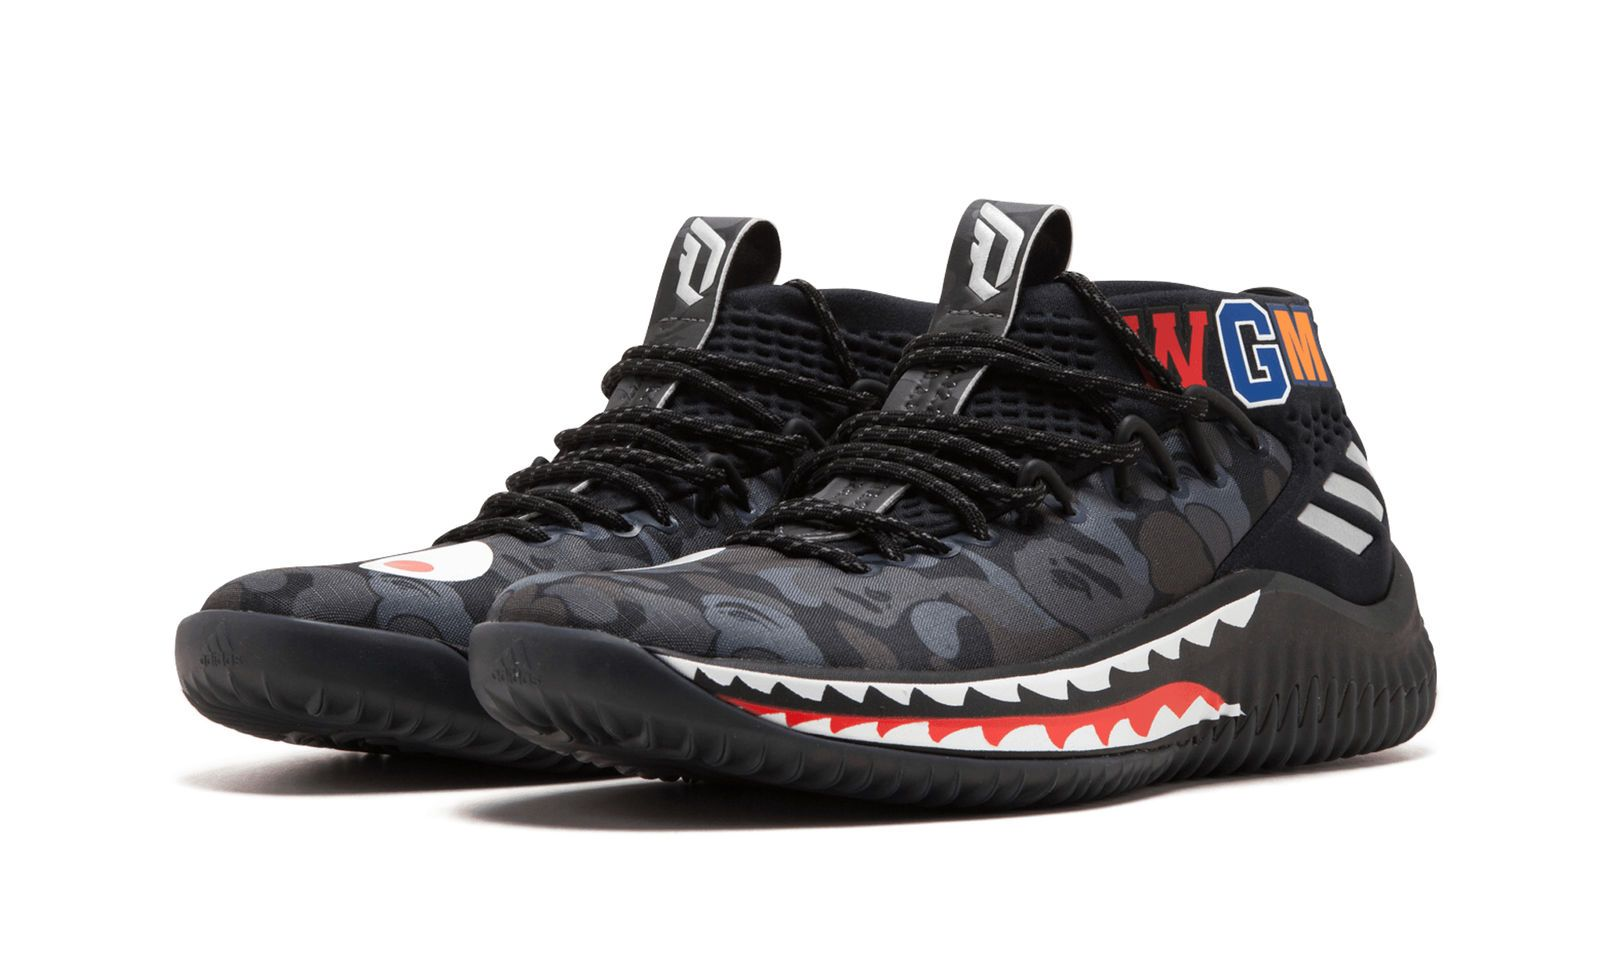 purchase cheap 17d6c 9ac64 Details about ADIDAS X A BATHING APE DAME4 DAME 4 DAMIAN ...